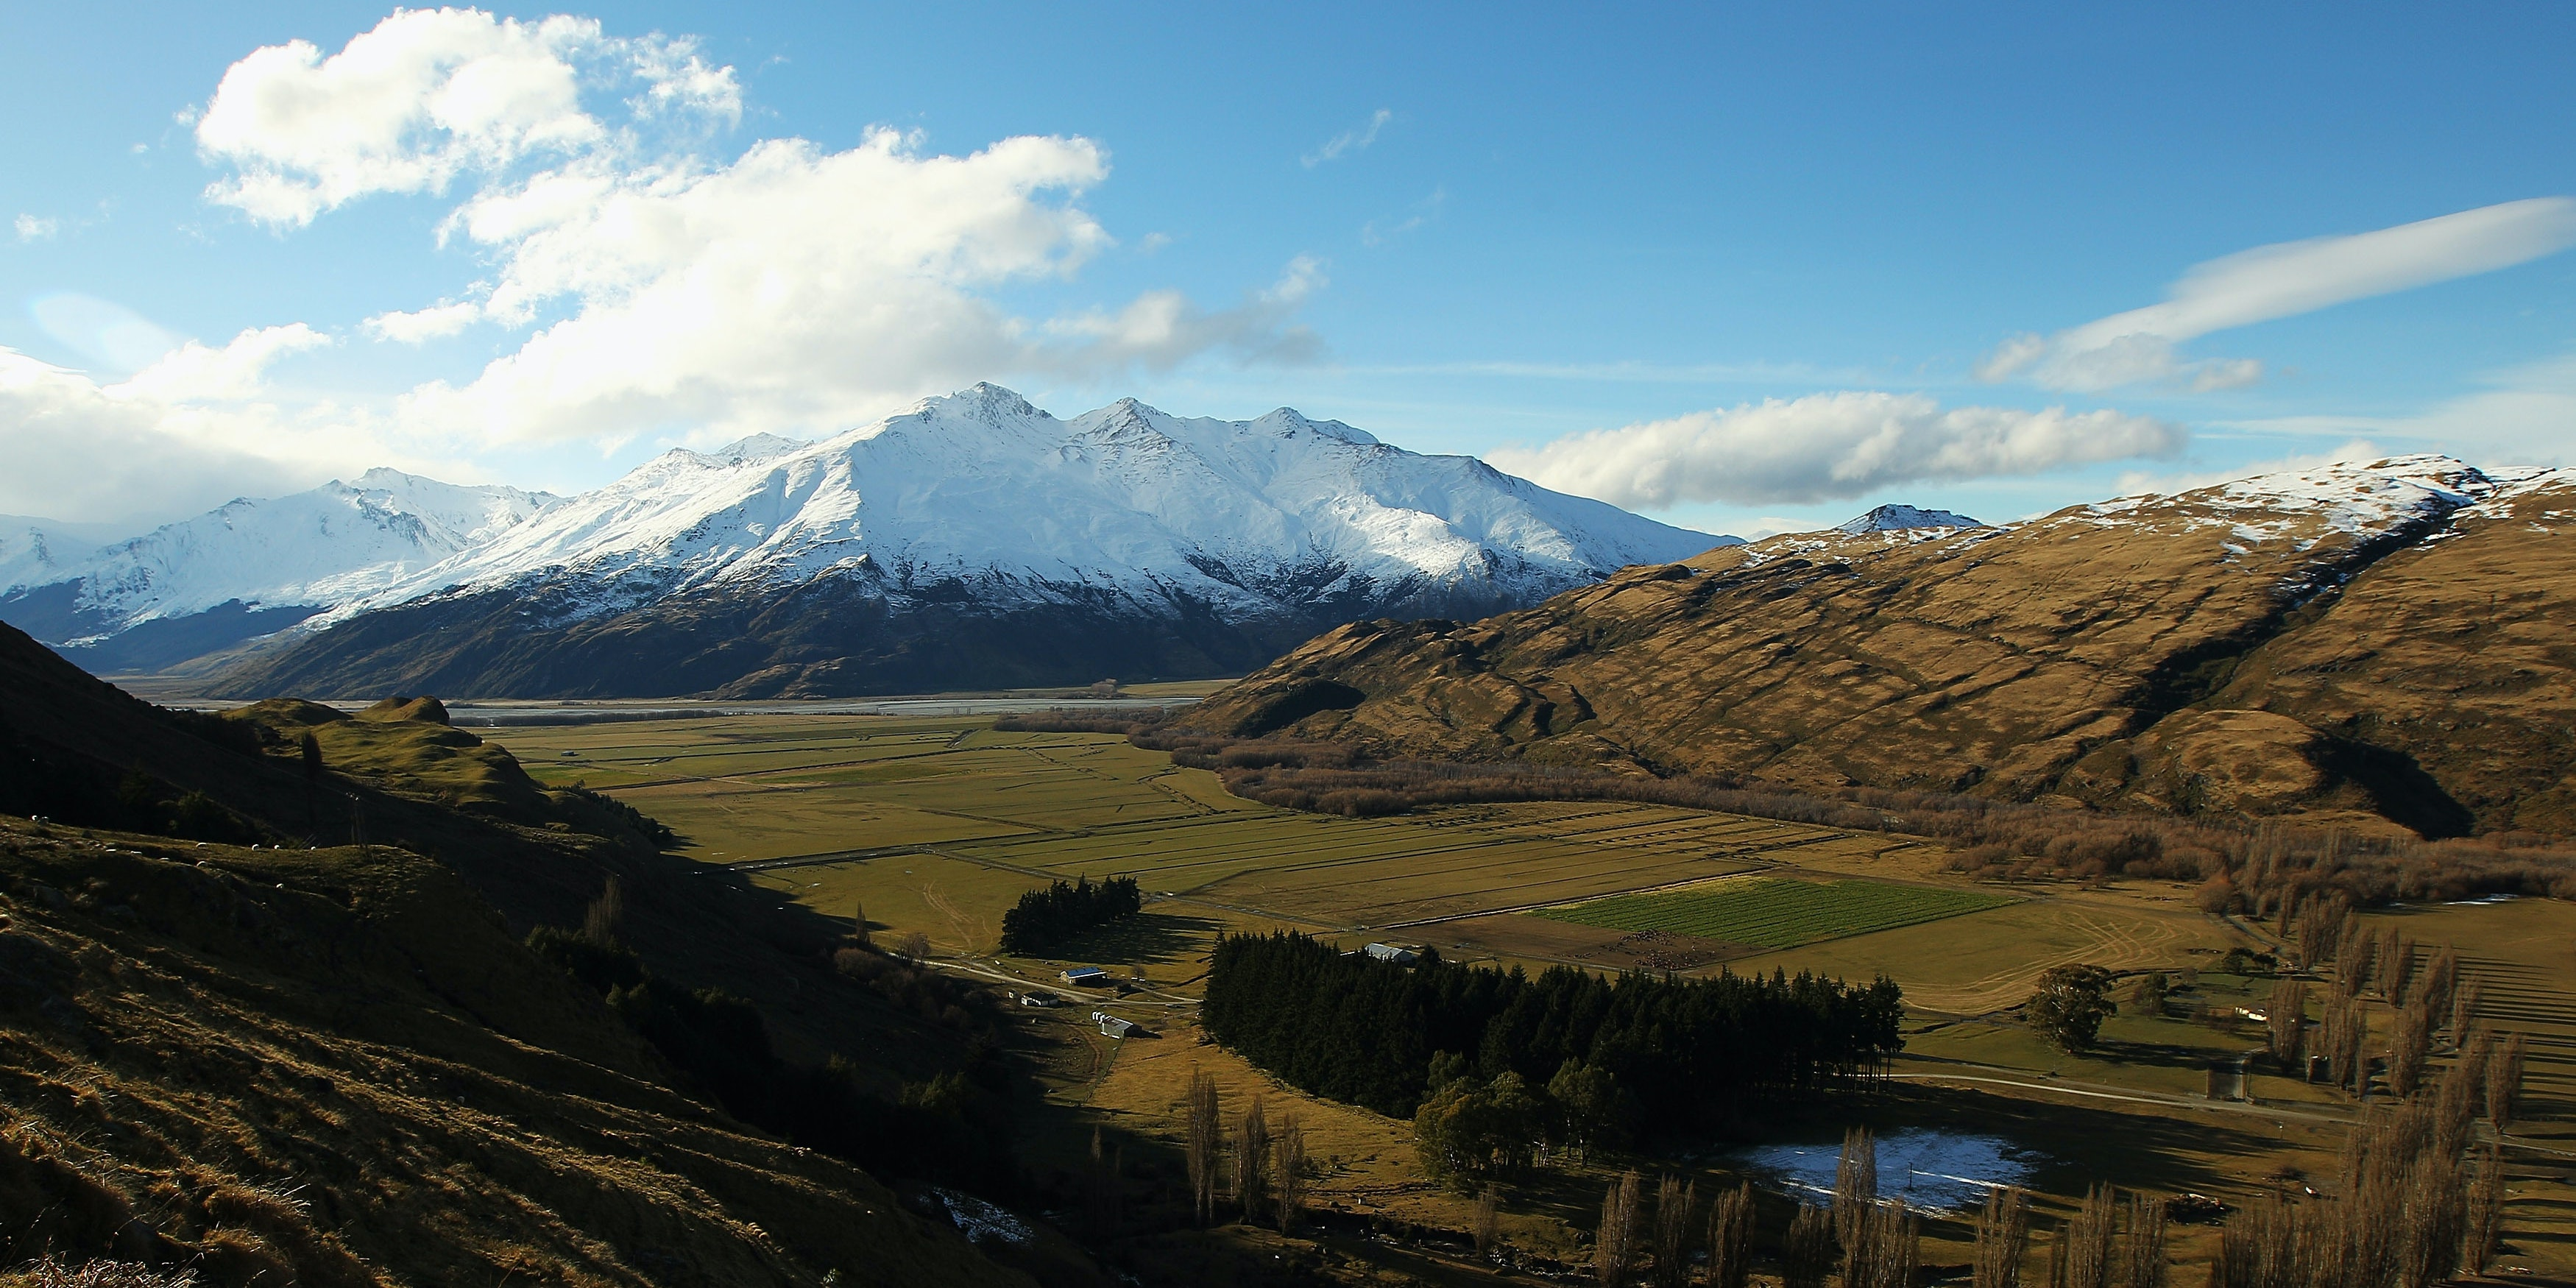 WANAKA, NEW ZEALAND - JULY 28:  A view of rural farmland from the Southern Alps on July 28, 2011 in Wanaka, New Zealand.  (Photo by Cameron Spencer/Getty Images)